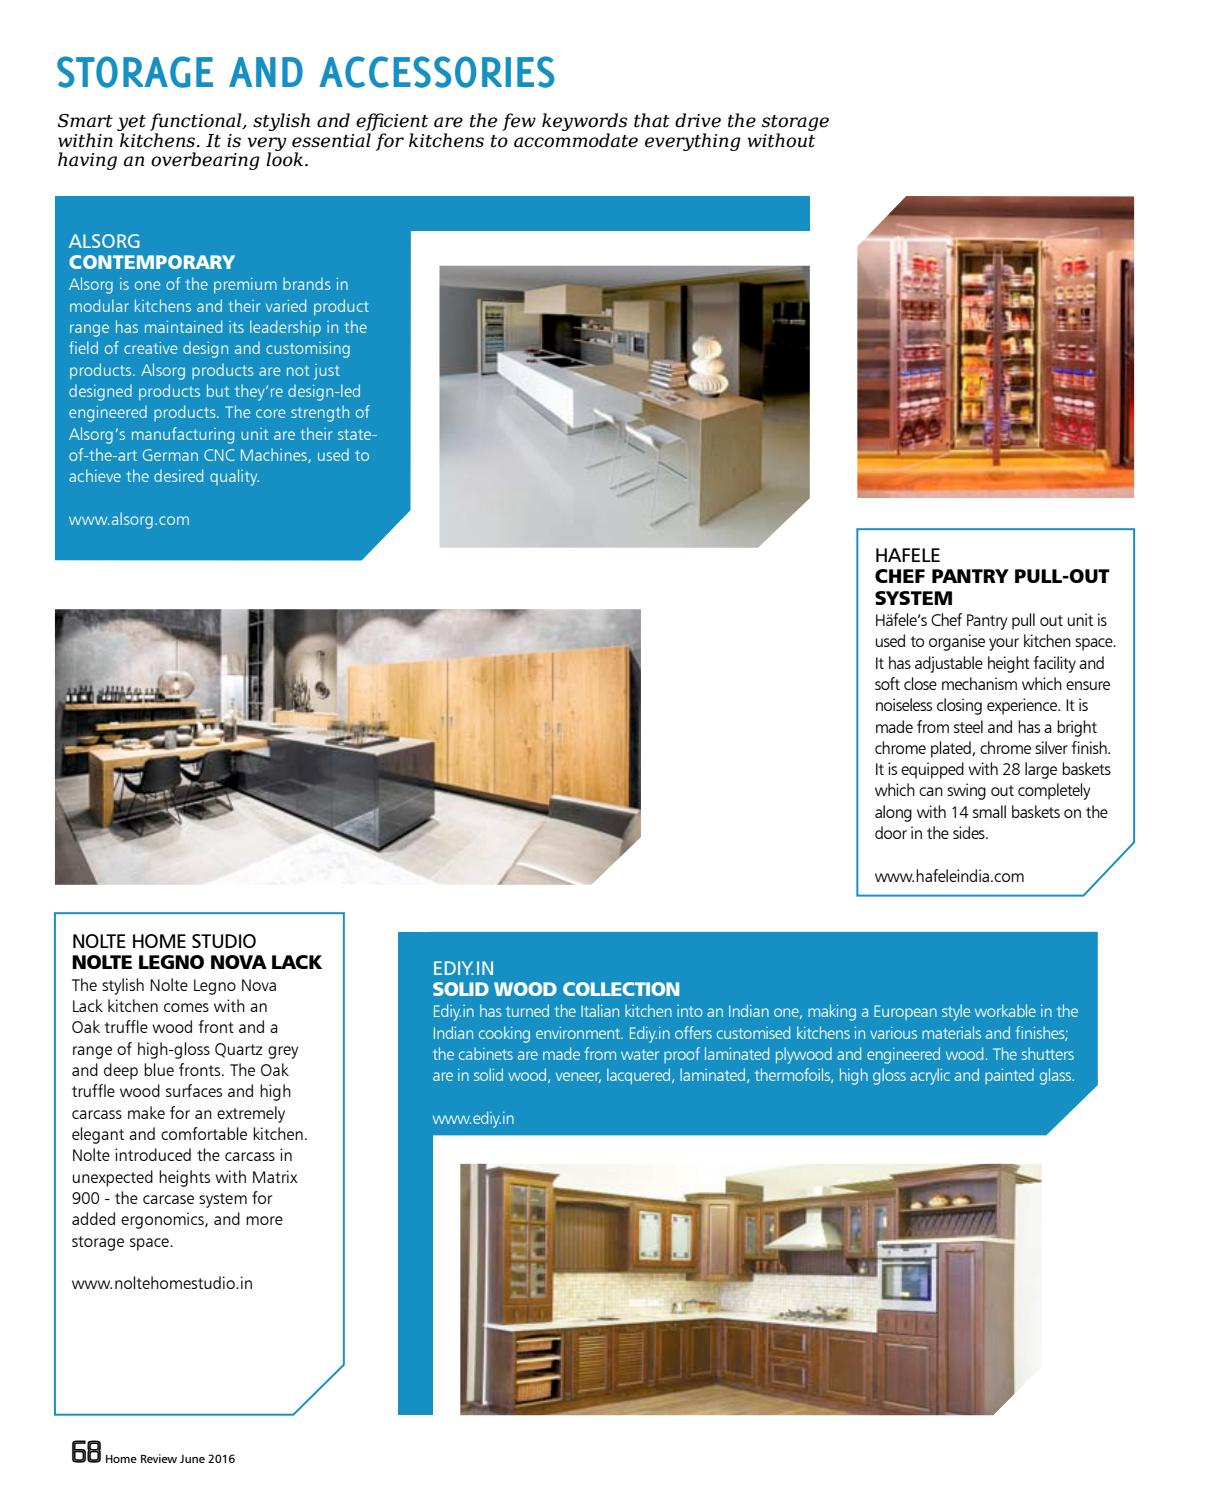 Home Review June 2016 by Home Review - issuu